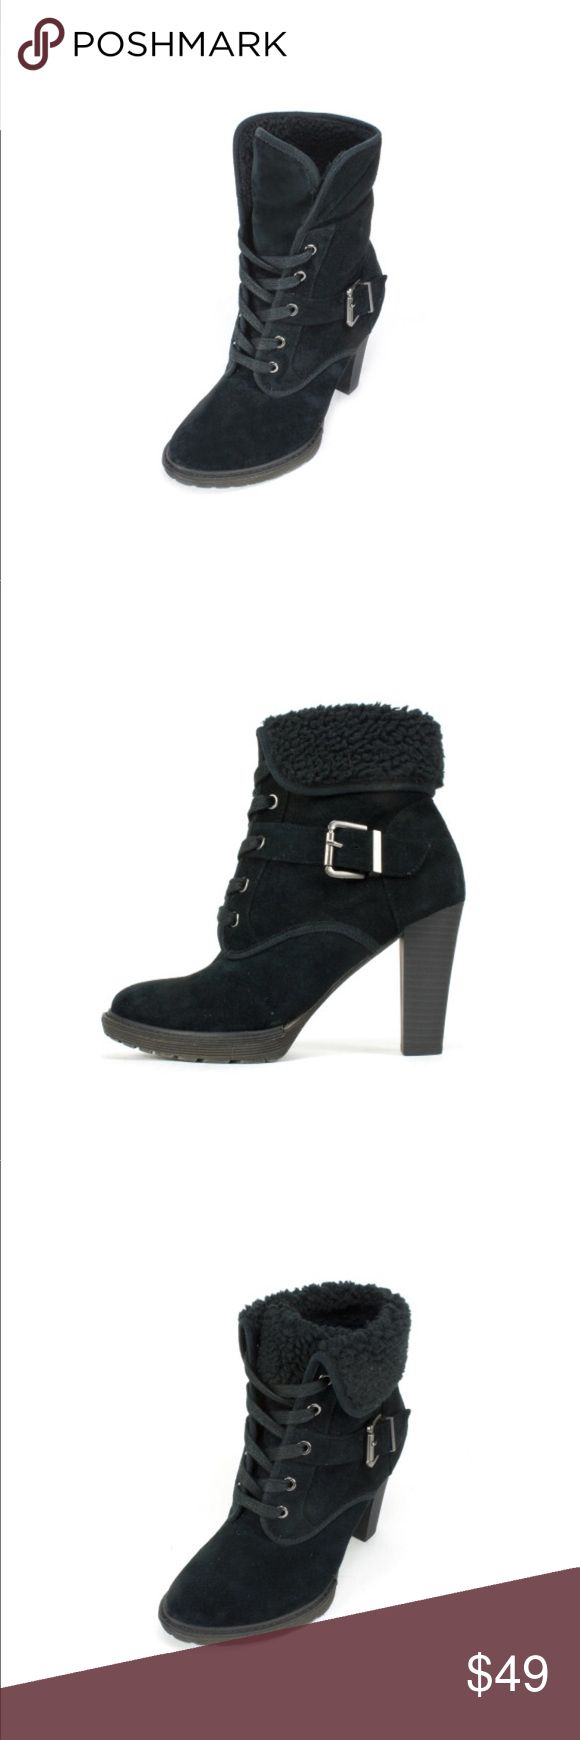 White Mountain Weather Smart Airborne Bootie US 10 THIS HEELED BOOTIE, CRAFTED FROM GENUINE LUXE LEATHER THAT HAS BEEN TREATED WITH 3M SCOTCHGARD PROTECTOR MAKING IT FULLY WATER RESISTANT. FAUX SHEARLING CUFF THAT CAN BE FOLDED UP OR DOWN A HIDDEN PLATFORM KEEPS YOUR FEEL COMFORTABLE AND SUPPORTED WHILST PROVIDING ALL THE HEIGHT YOU NEED. These leg slimming ankle boots are a great way to do heels in the winter months.   HEEL HEIGHT: 3.75 INCHES SHAFT HEIGHT: ROLLED 4.75 INCHES UNROLLED 6.25…